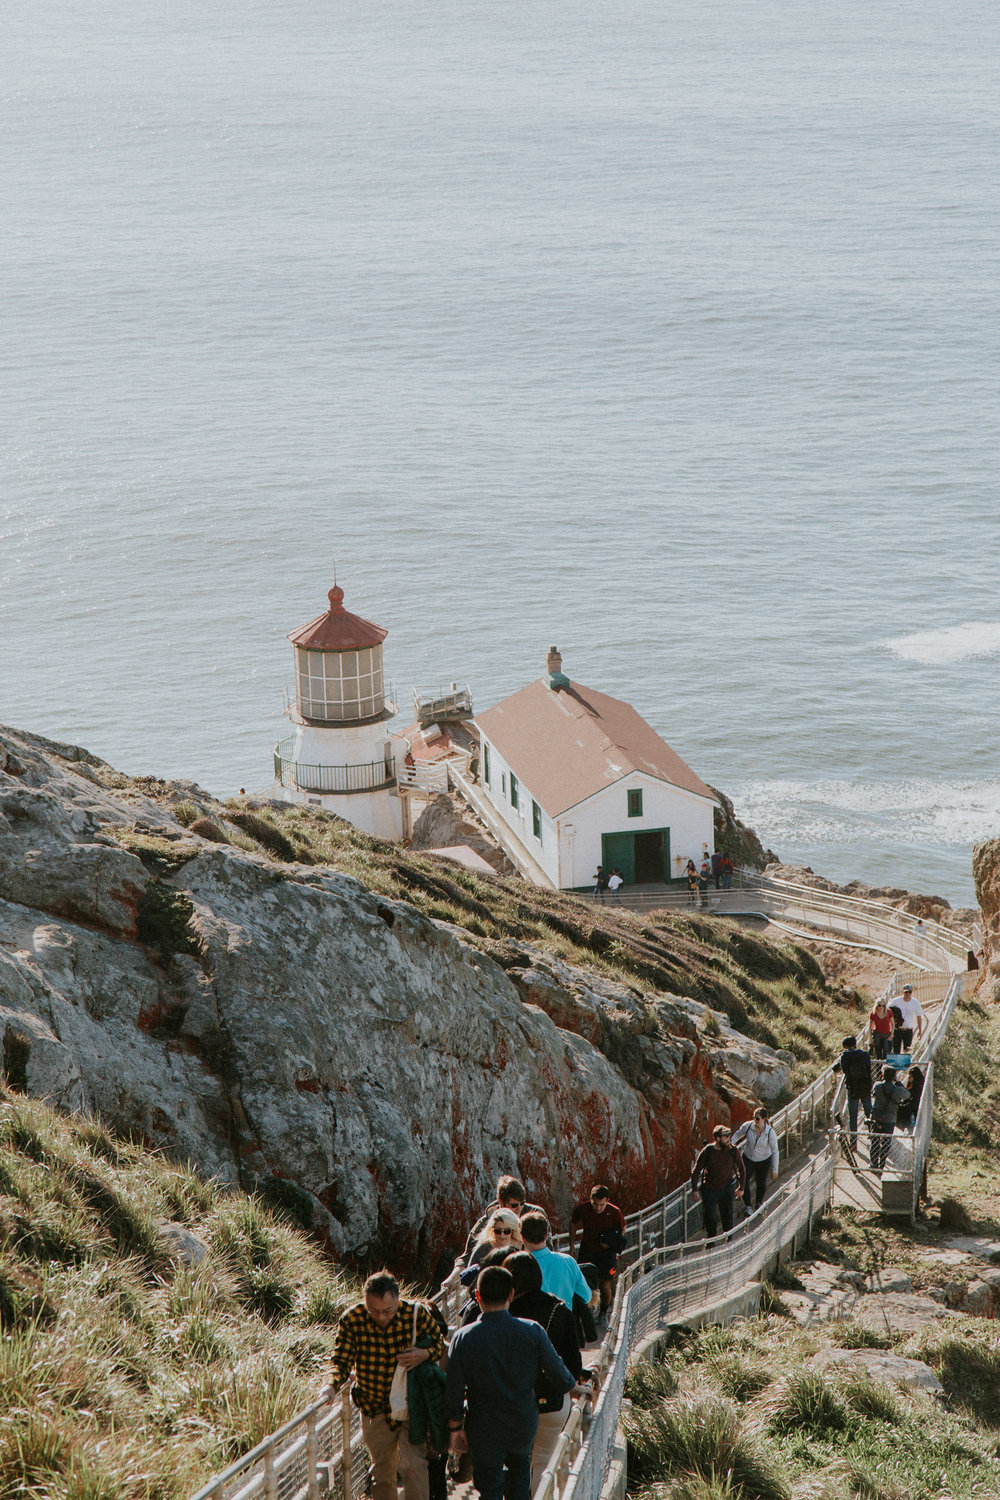 Point Reyes National Seashore pacific ocean overlook lighthouse elephant seal whale San Francisco California Travel Hike nature wanderlust CA SF best things to do in northern cali map trail adventure photographer photography road trip 6